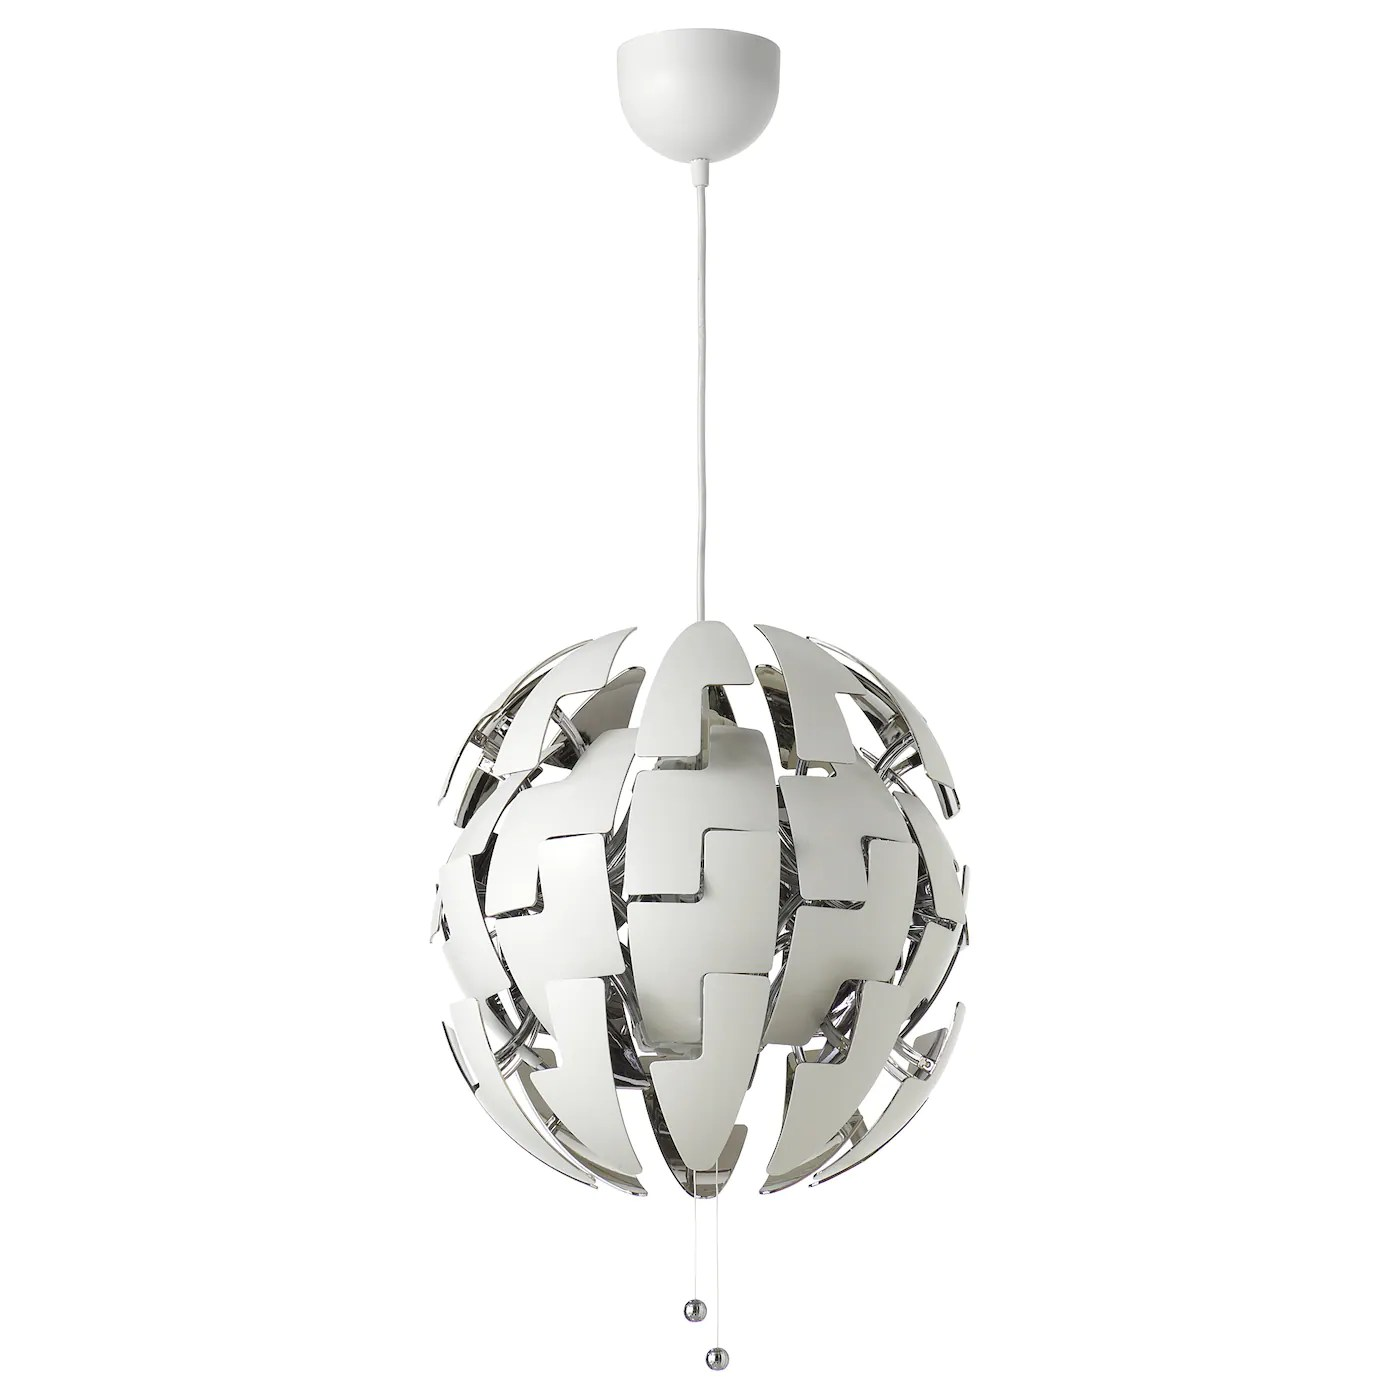 Ikea PS 2014 Pendant Lamp White Silver